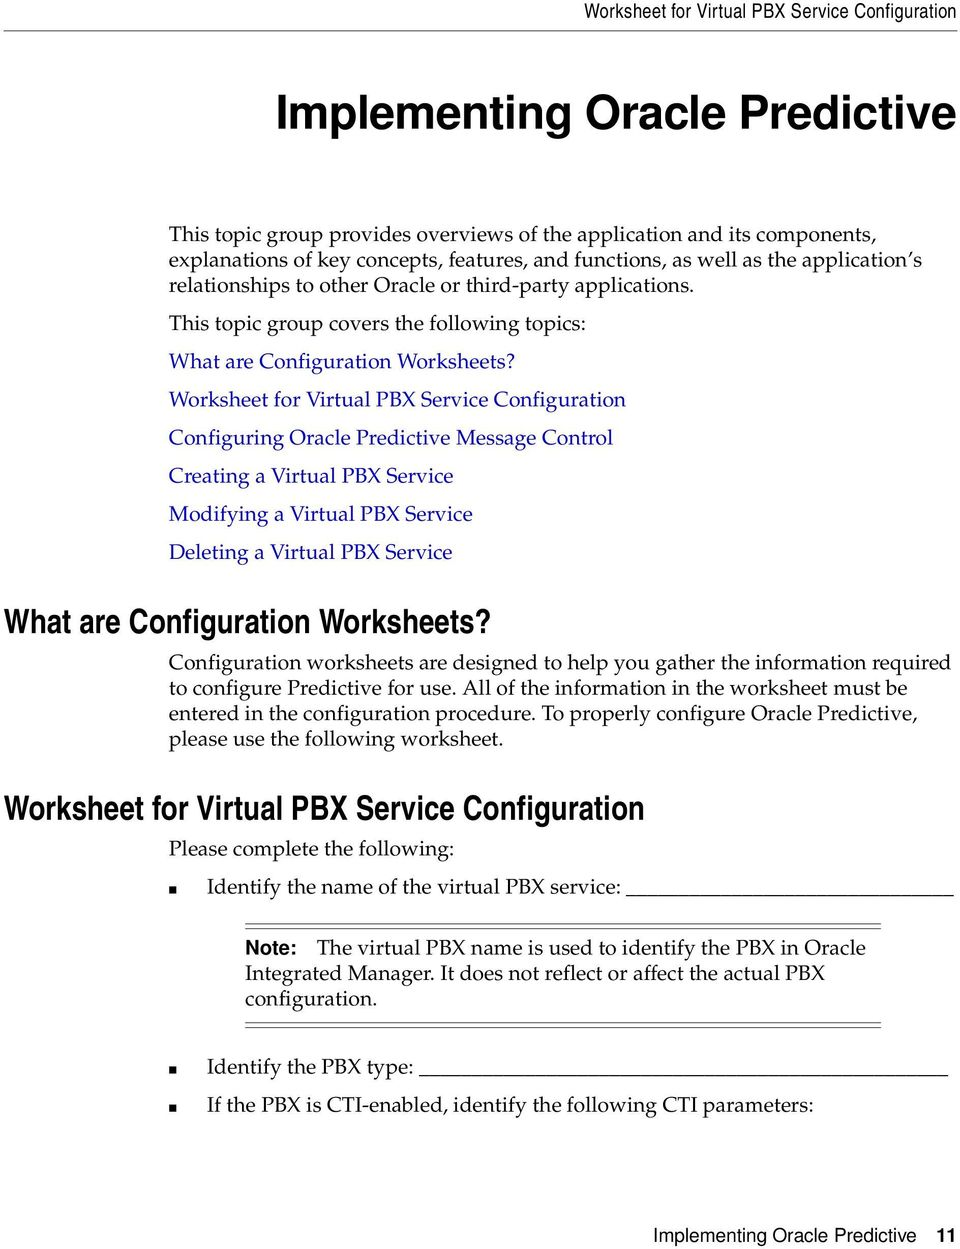 Worksheet for Virtual PBX Service Configuration Configuring Oracle Predictive Message Control Creating a Virtual PBX Service Modifying a Virtual PBX Service Deleting a Virtual PBX Service What are